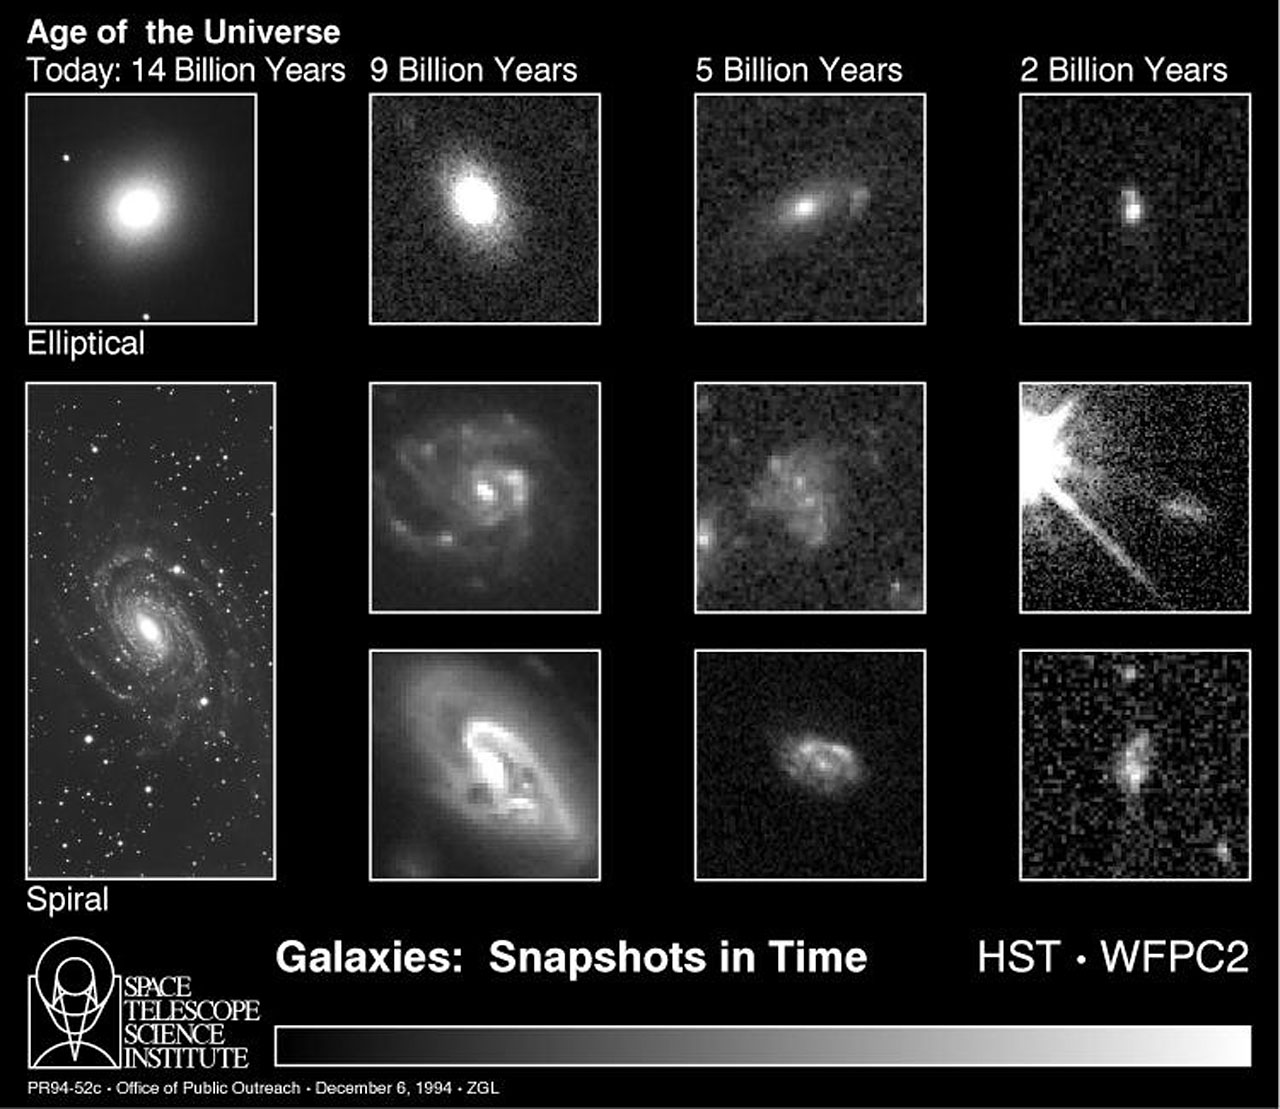 Galaxies: Snapshots in Time